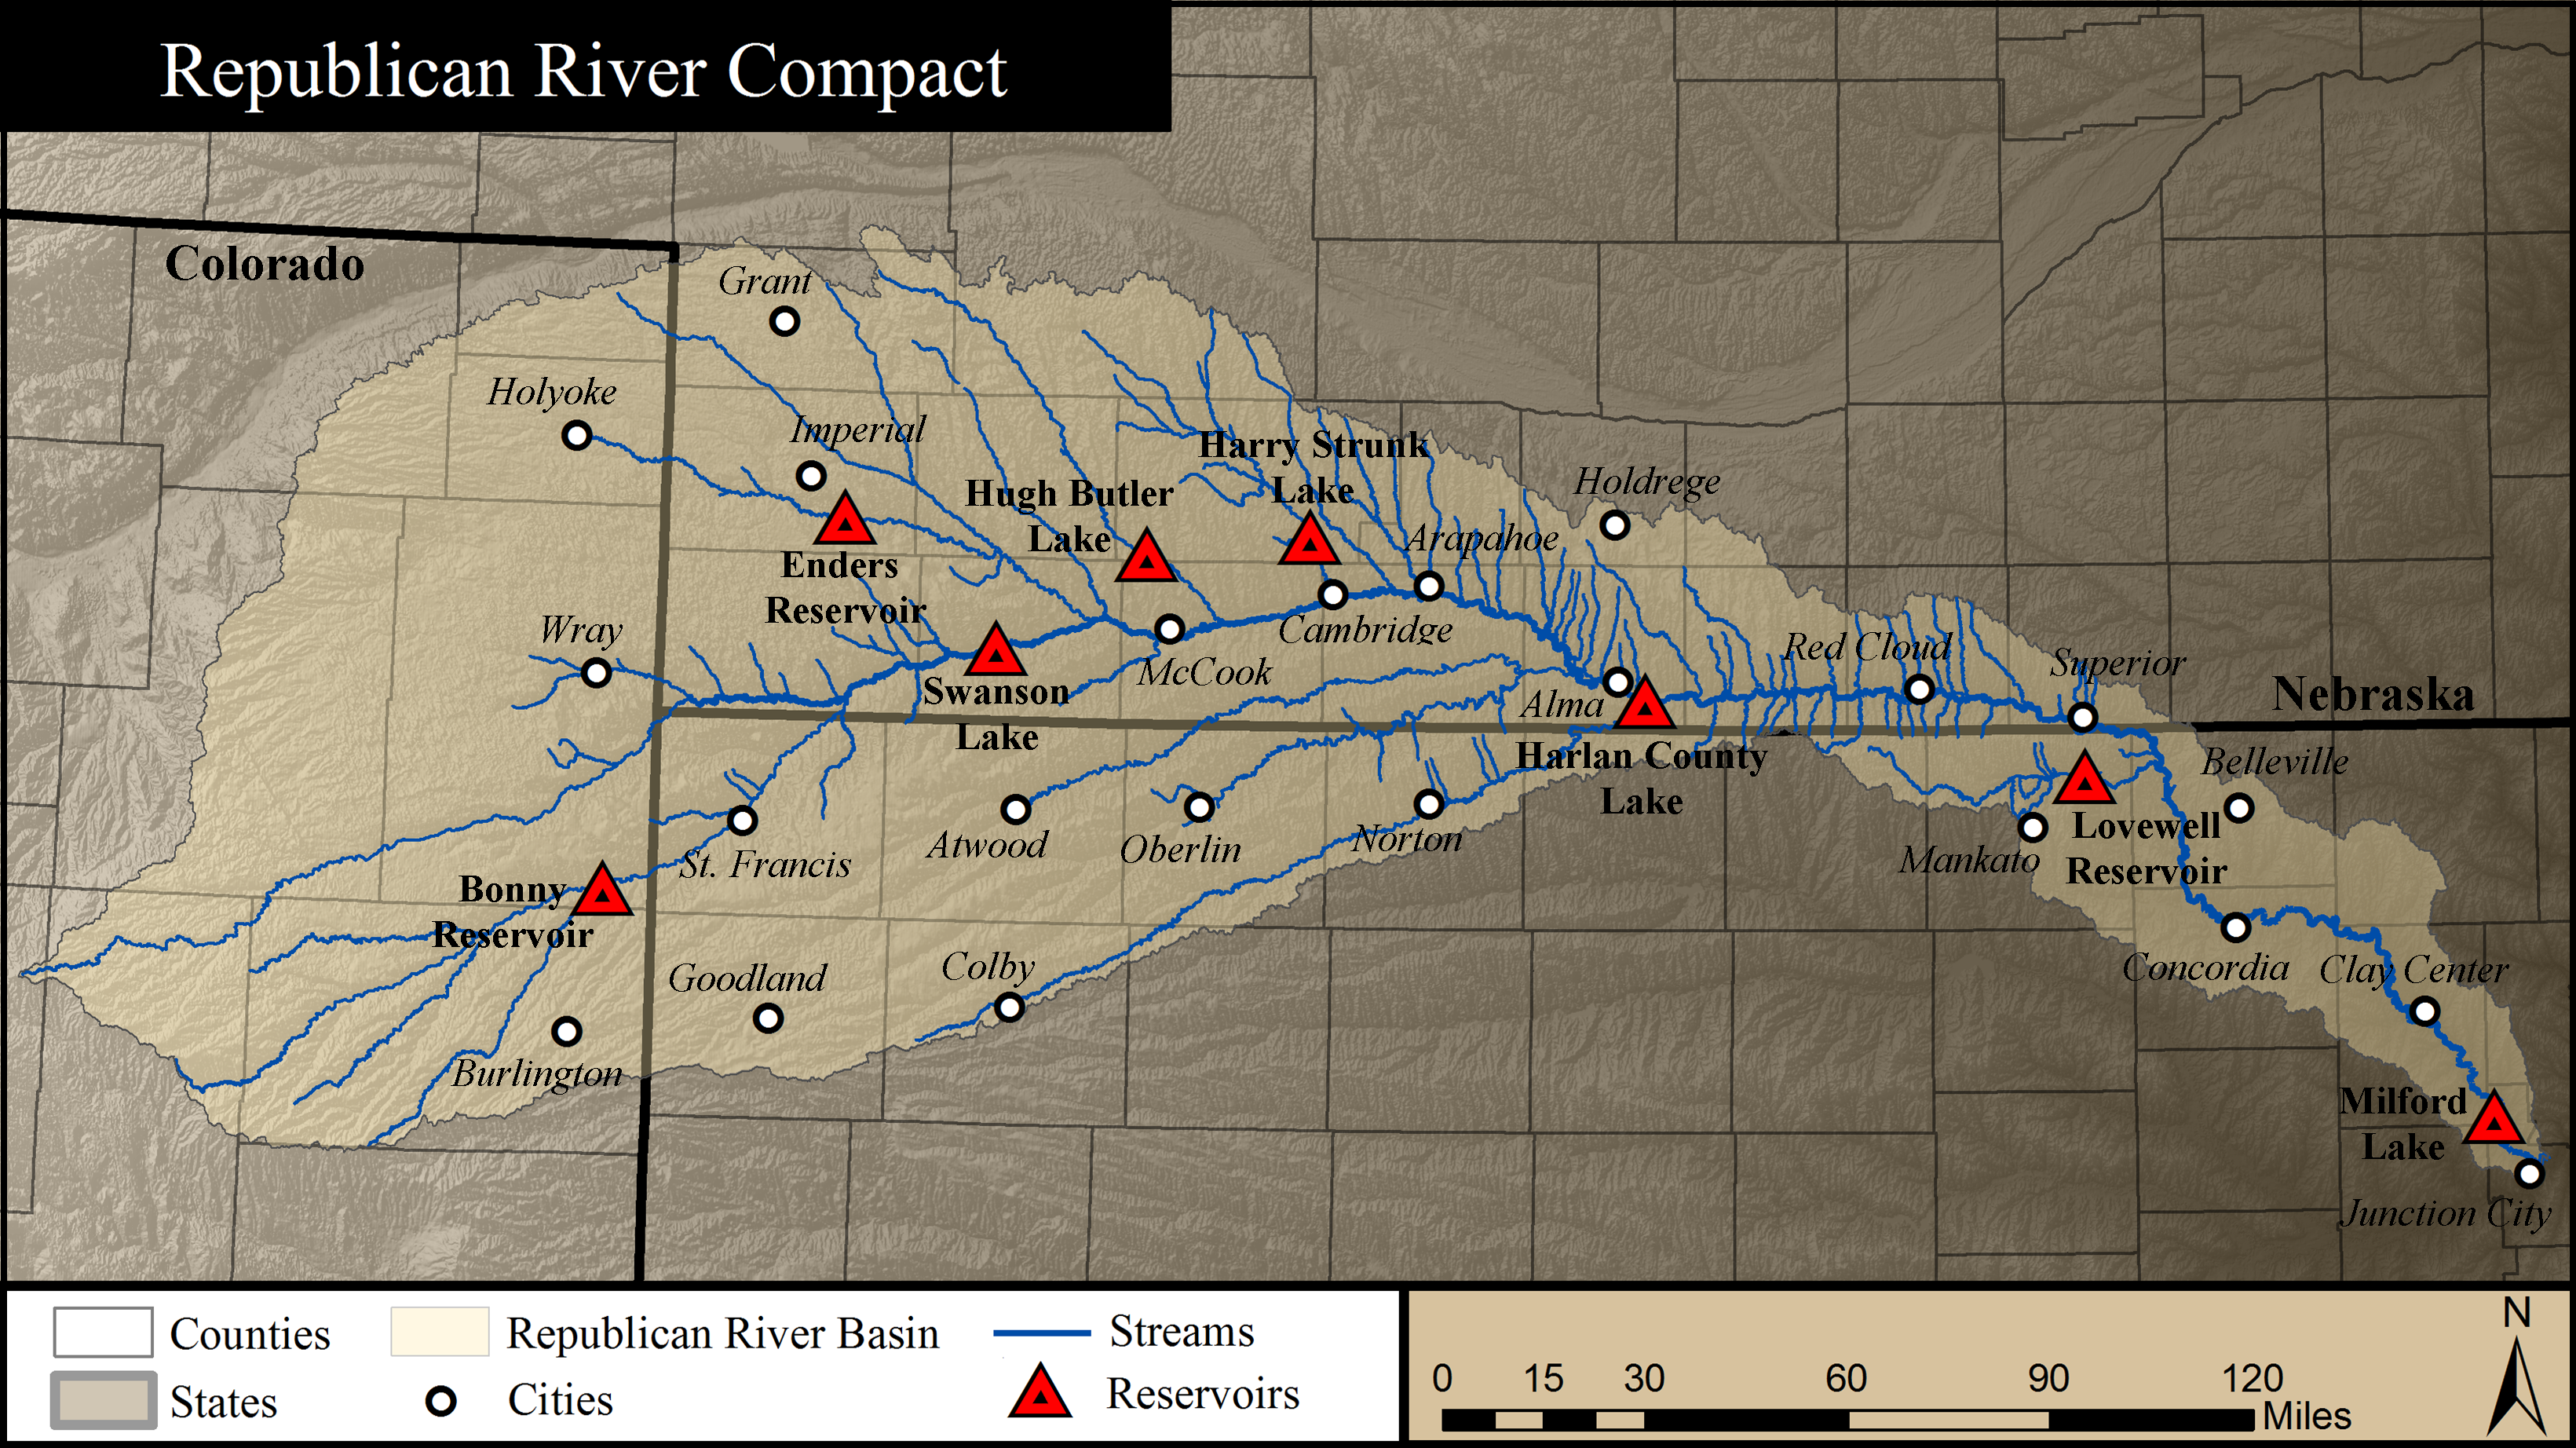 Republican River Compact Area